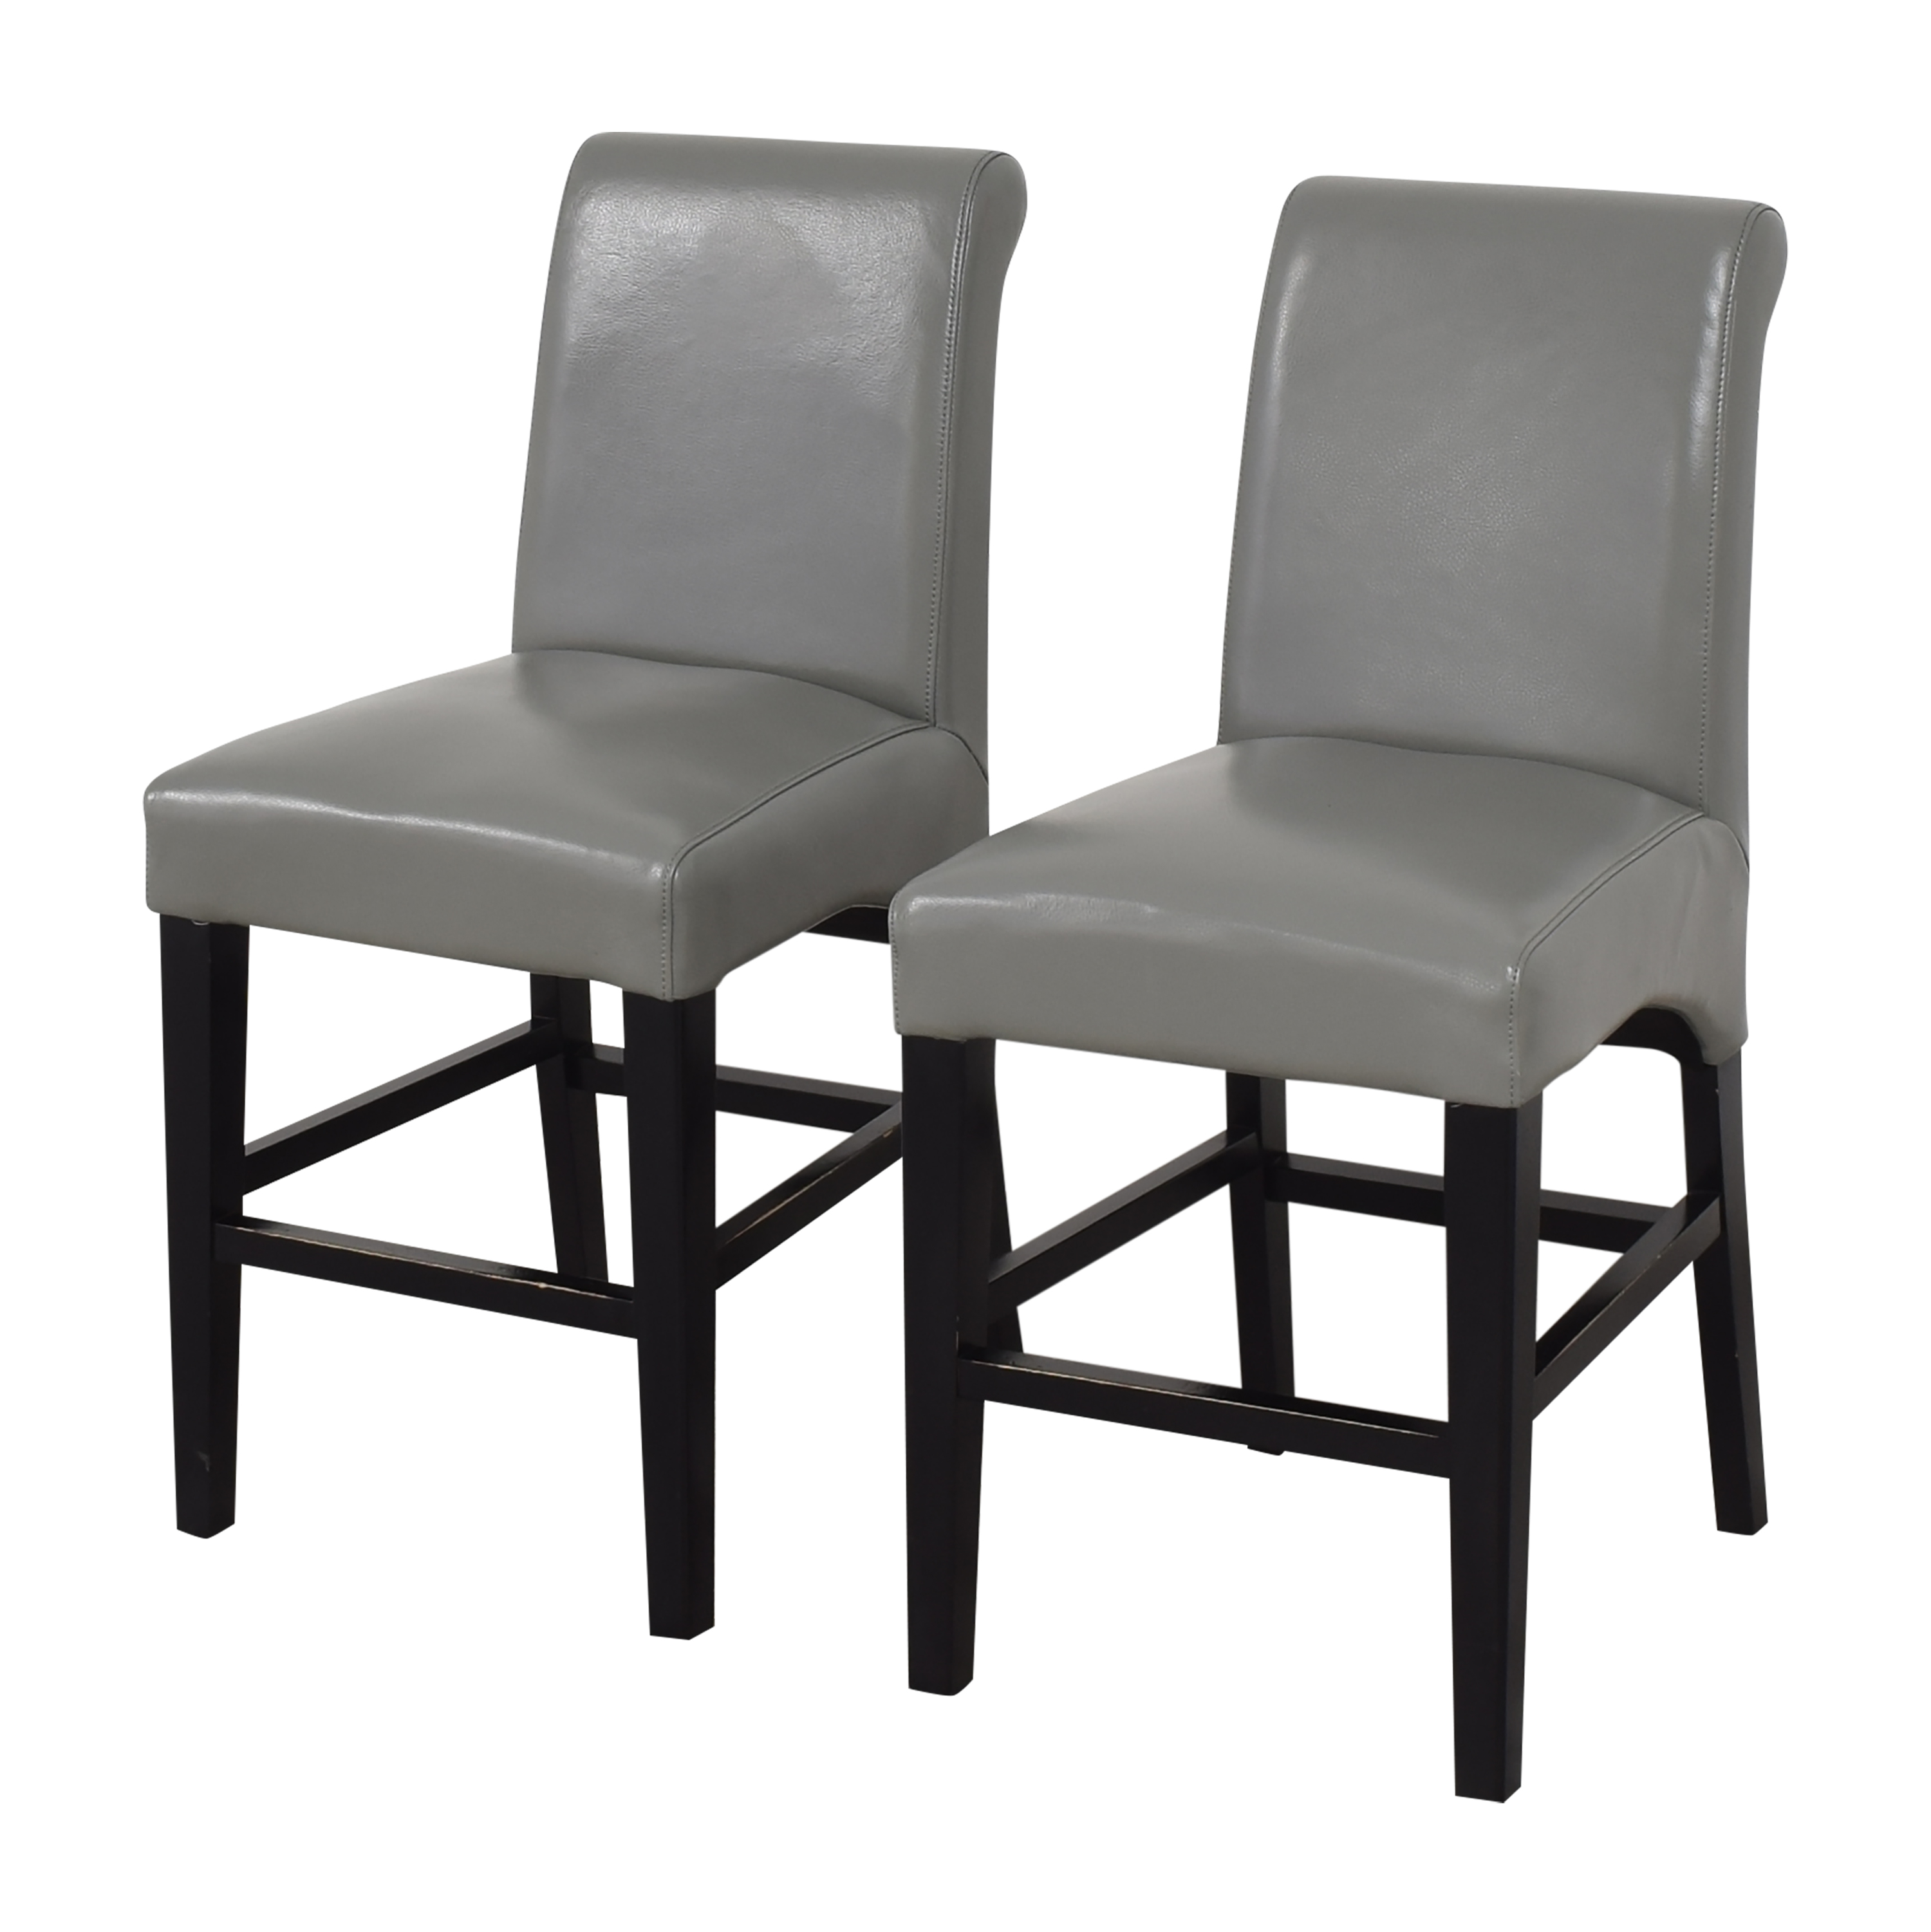 Upholstered Scroll Back Counter Stools gray and black